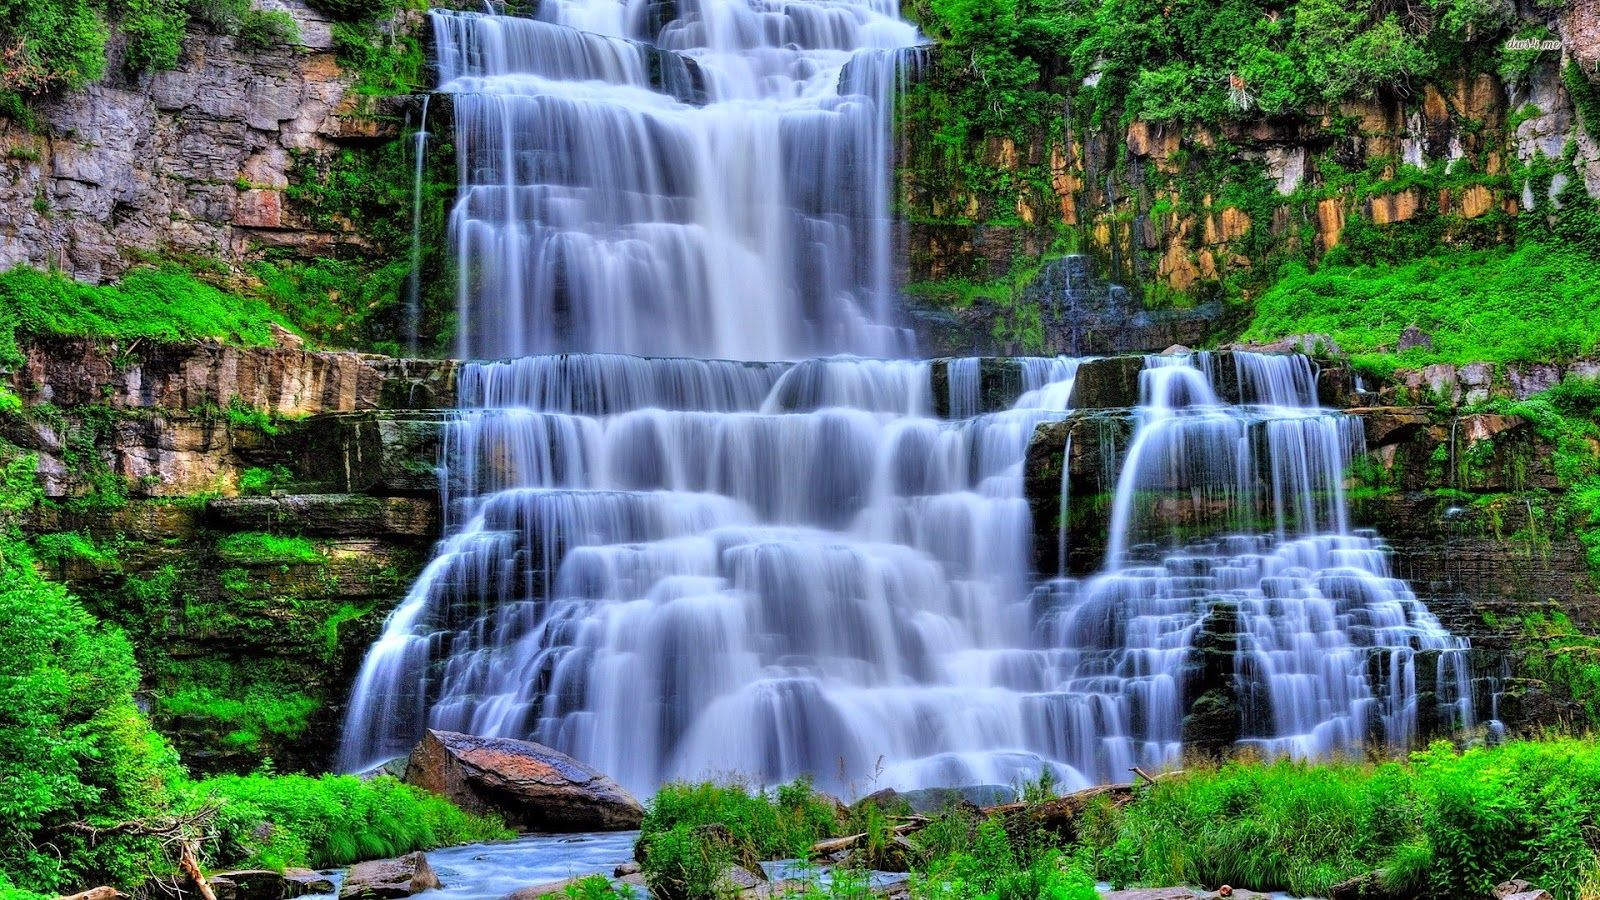 Waterfall Nature Wallpapers Top Free Waterfall Nature Backgrounds